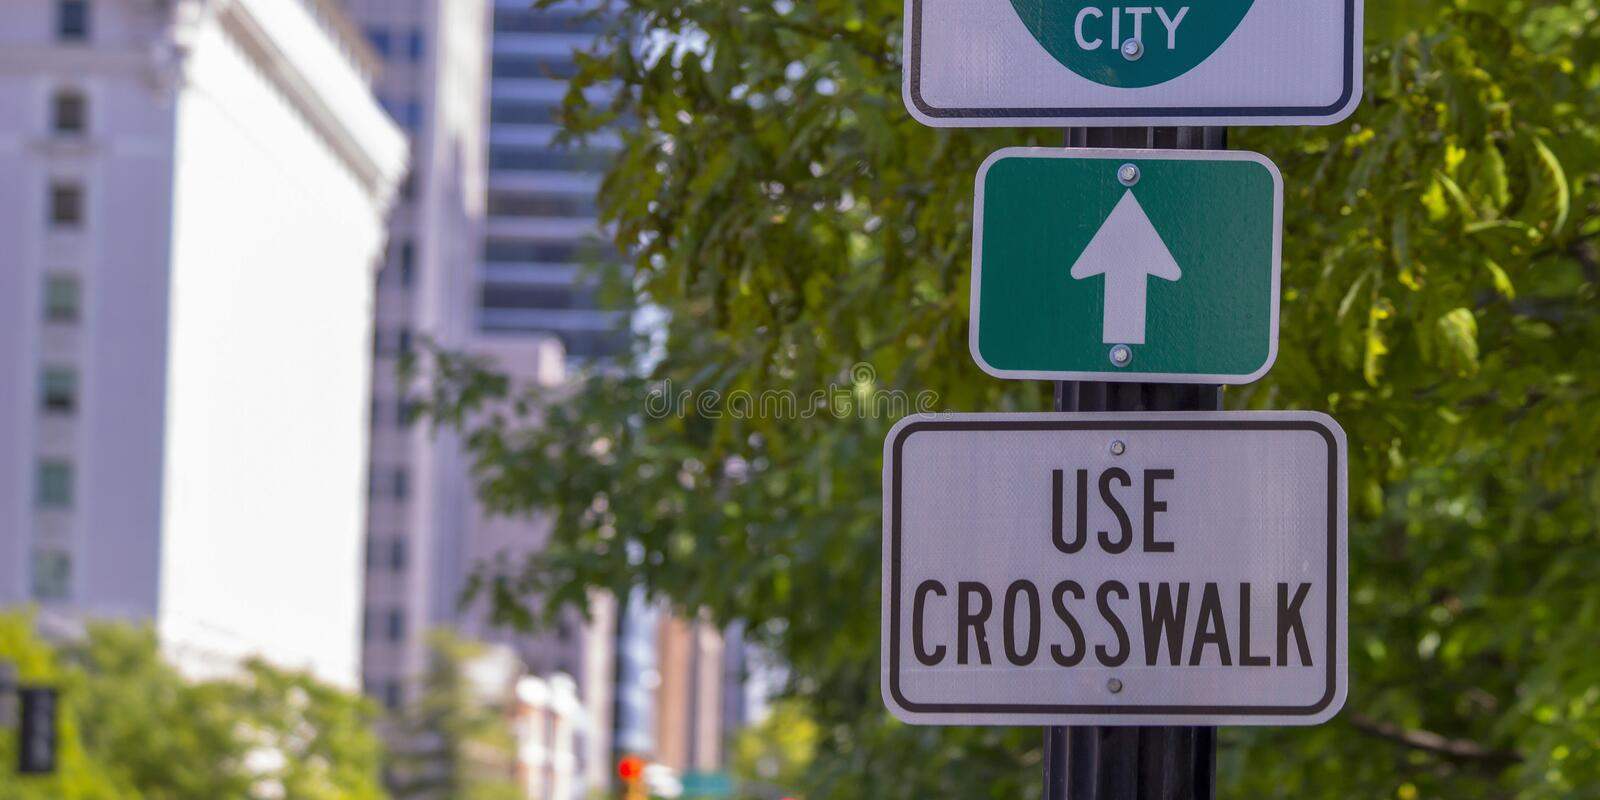 Use crosswalk and arrow signs on a sunny street. Close up view of road signs against a tree and buildings. One sign reads Use Crosswalk, while the other shows stock image